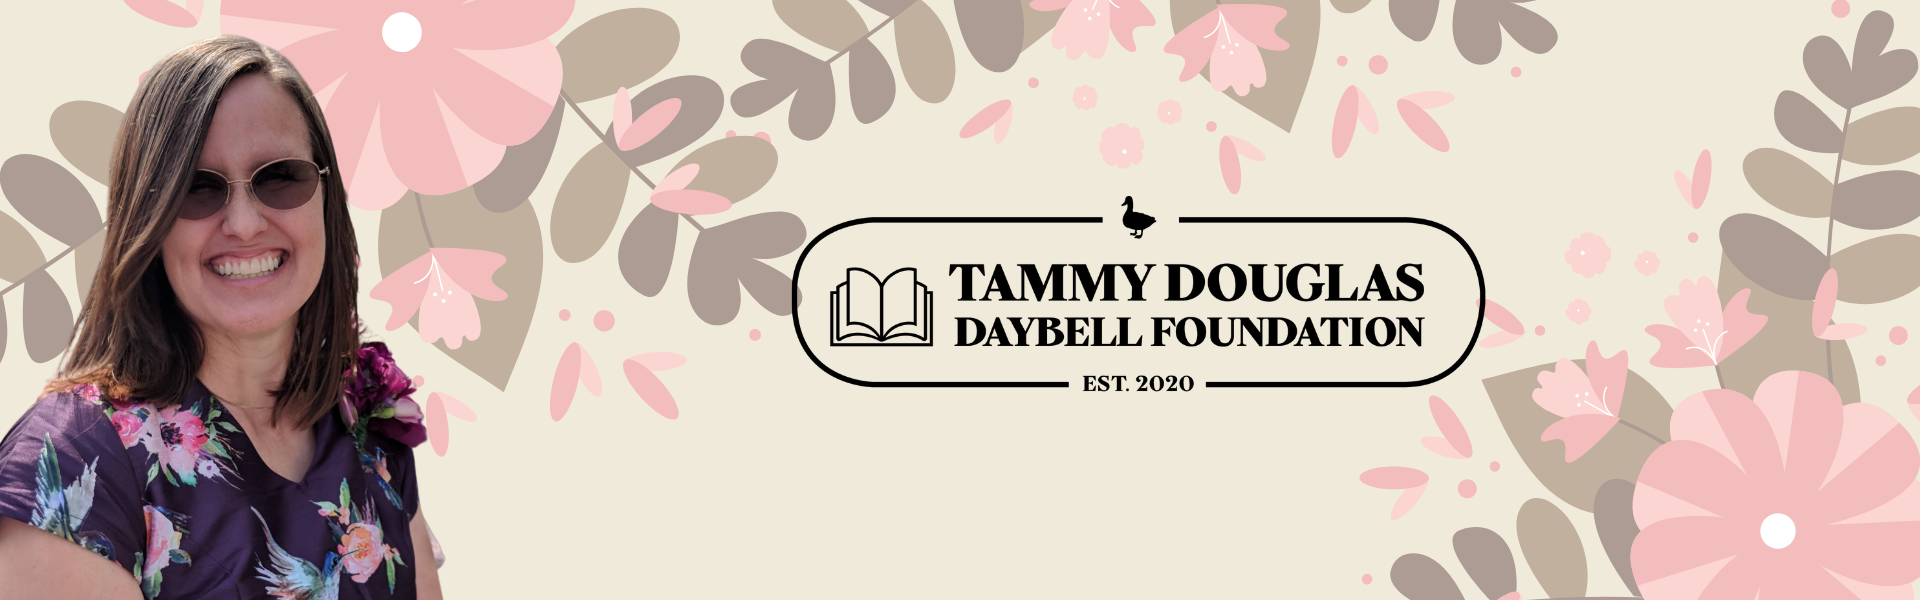 Tammy Douglas Daybell Foundation